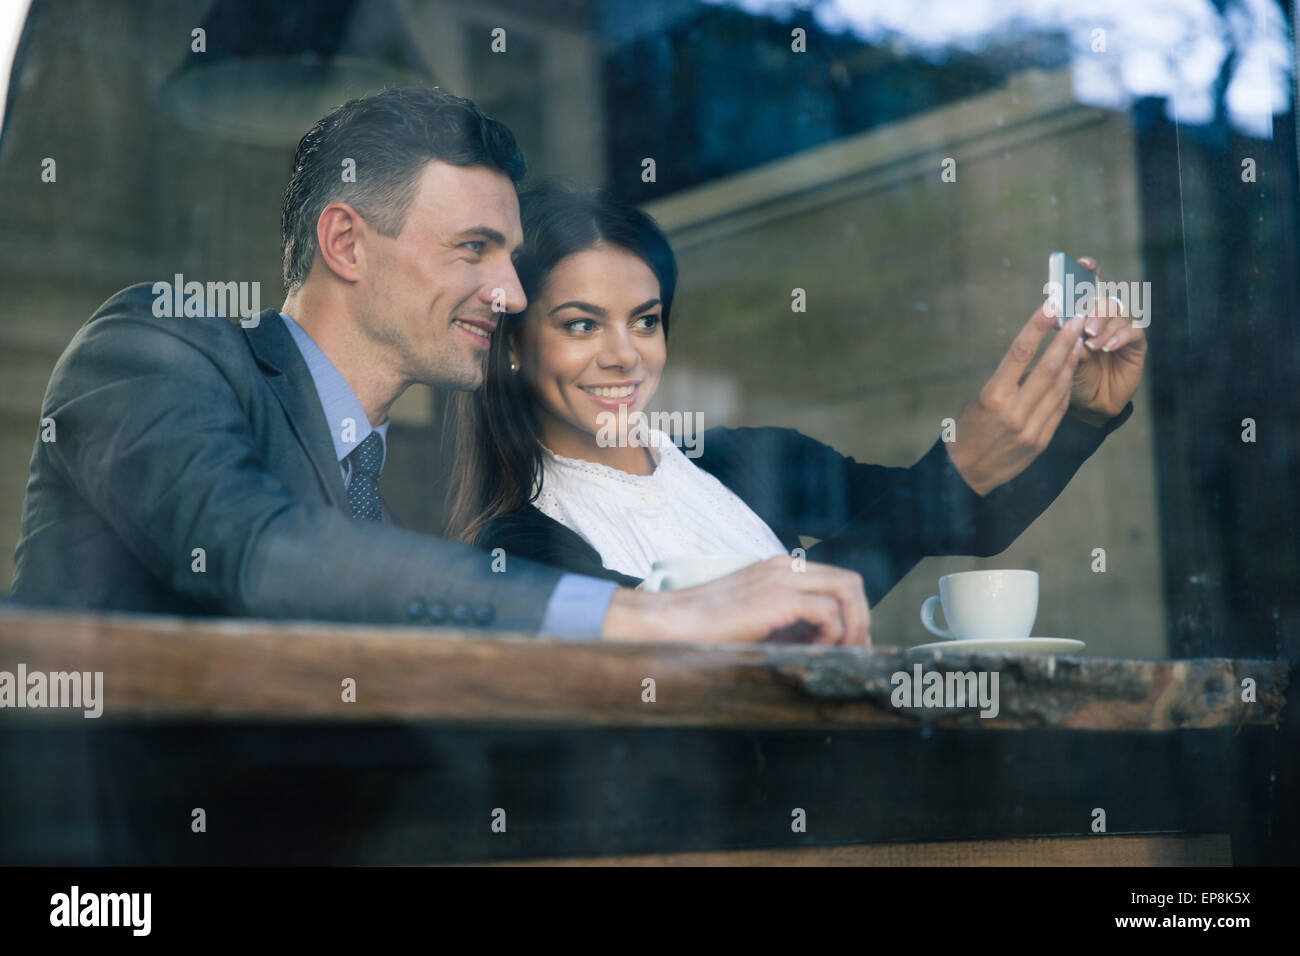 Smiling businesswoman and businessman making selfie photo on smartphone in cafe - Stock Image